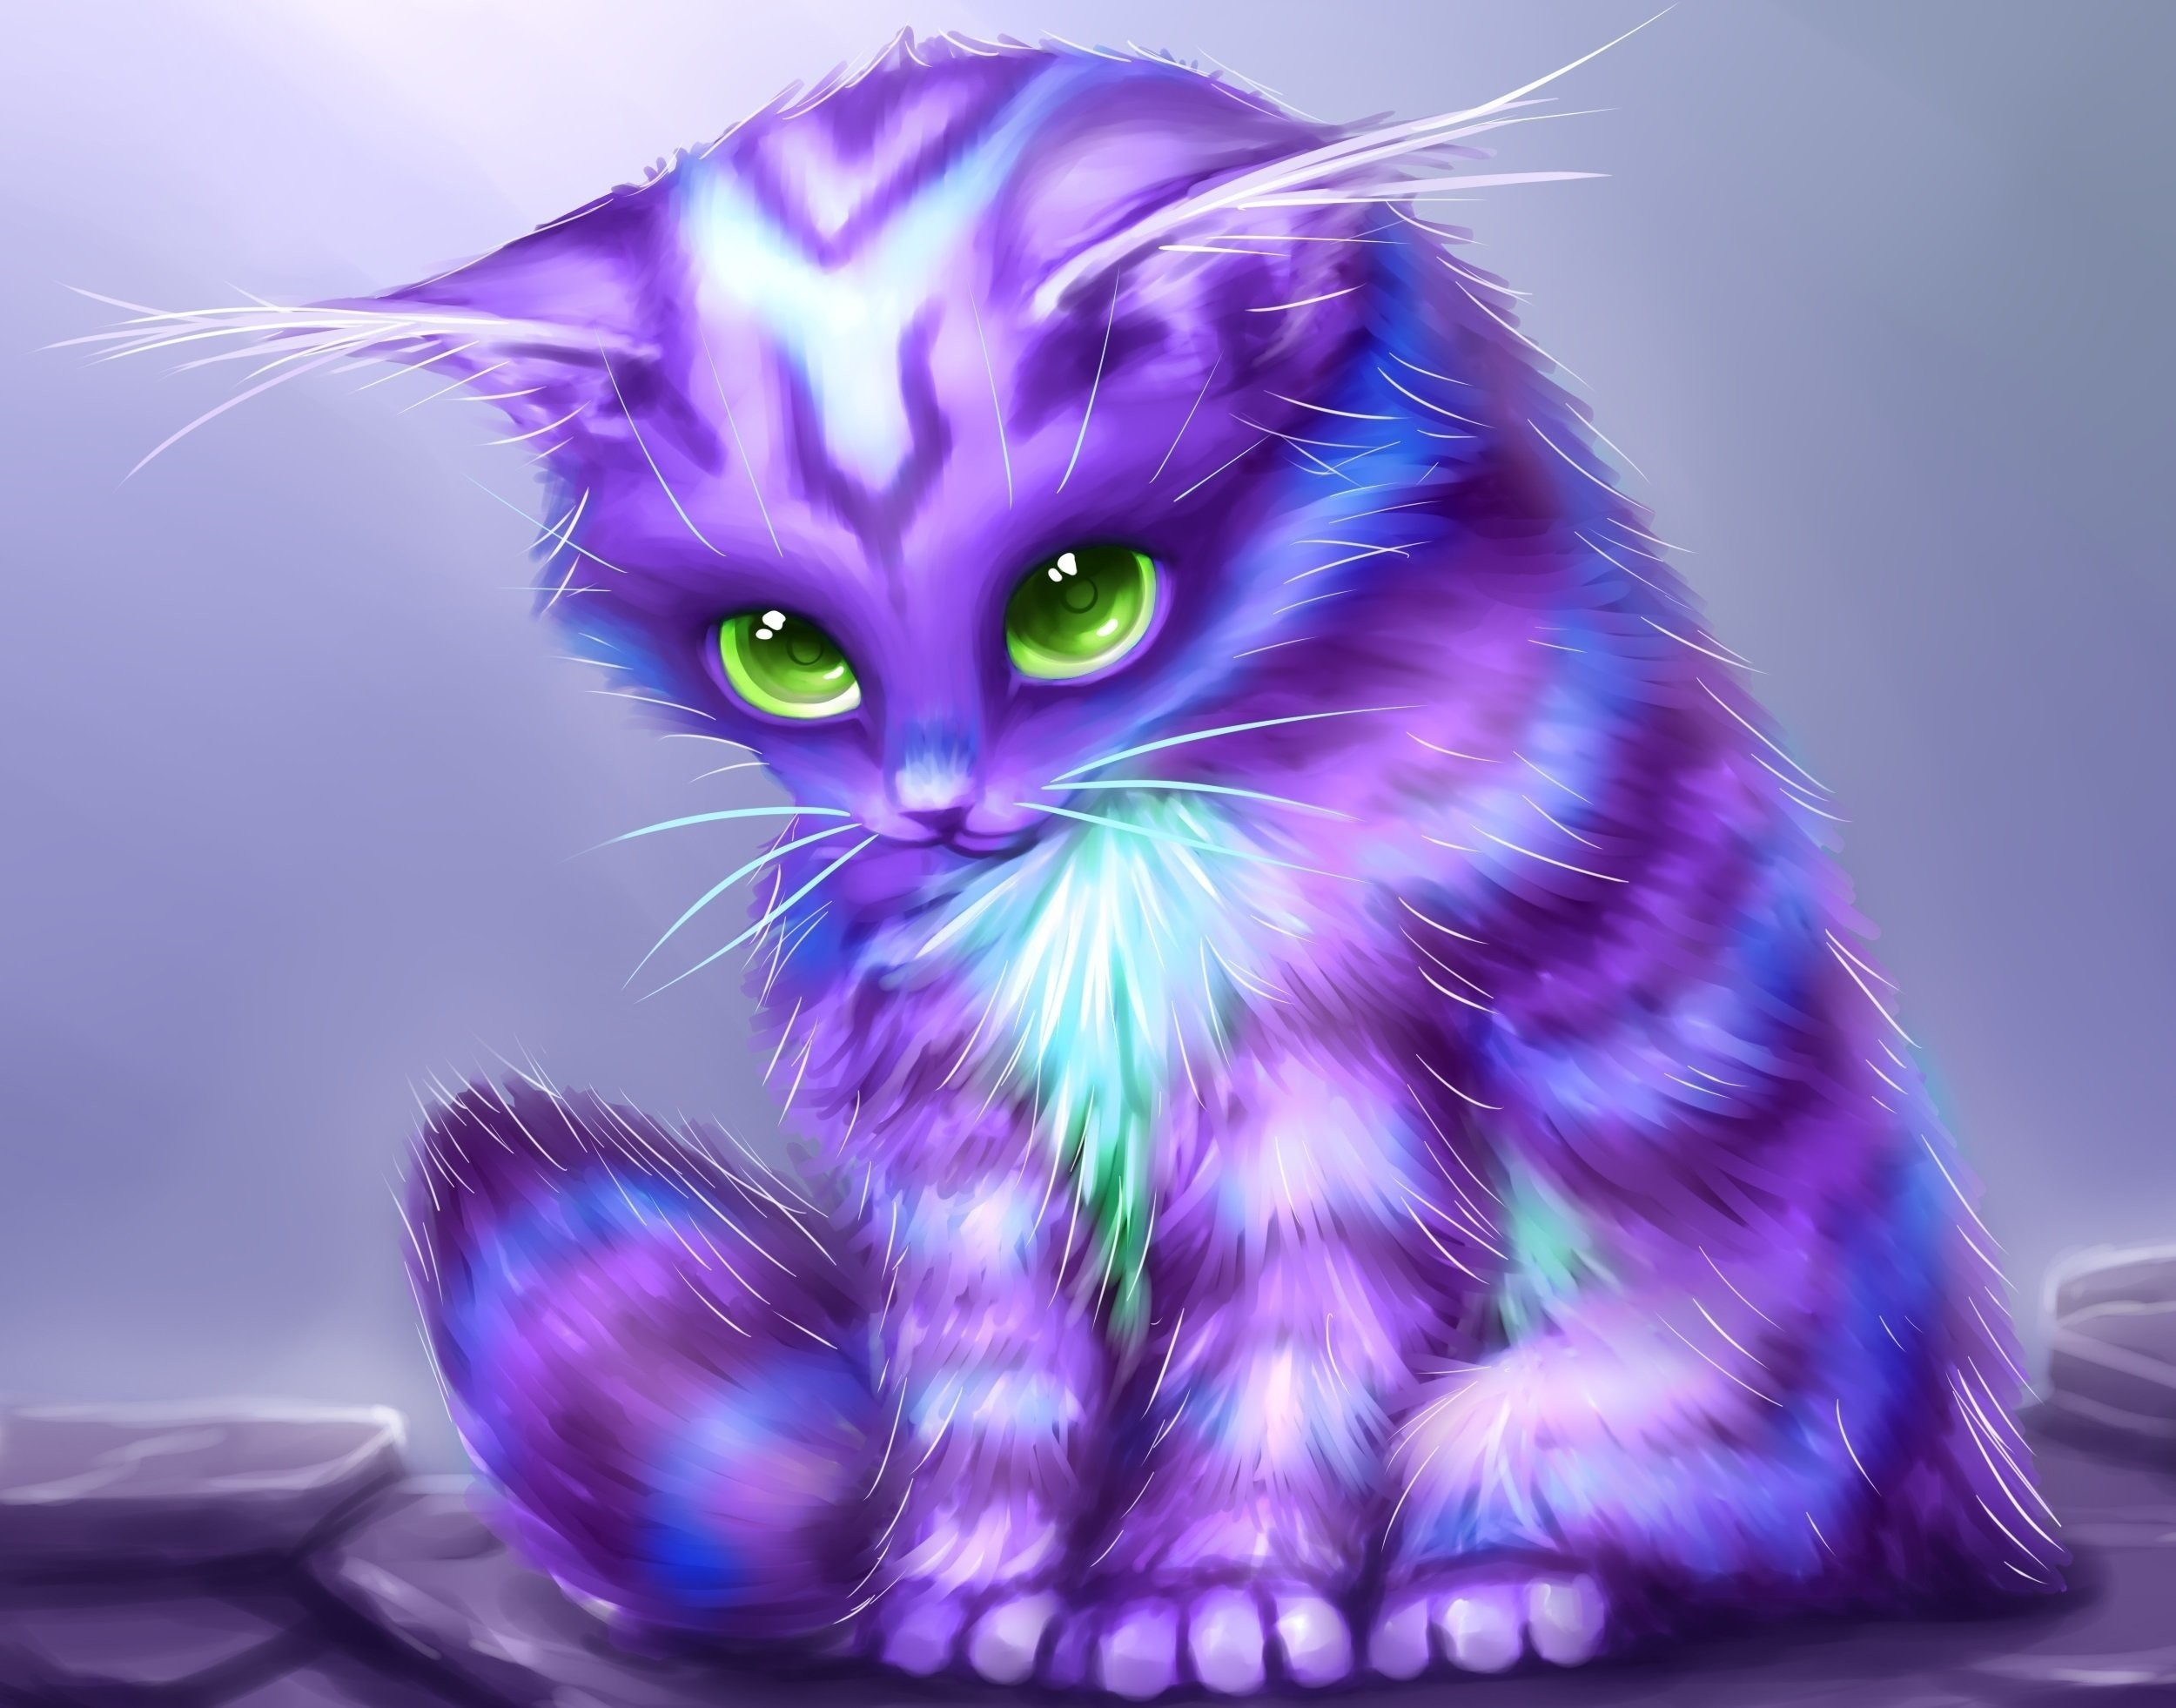 Cats Fantasy cat kitten baby cute psychedelic wallpaper background .